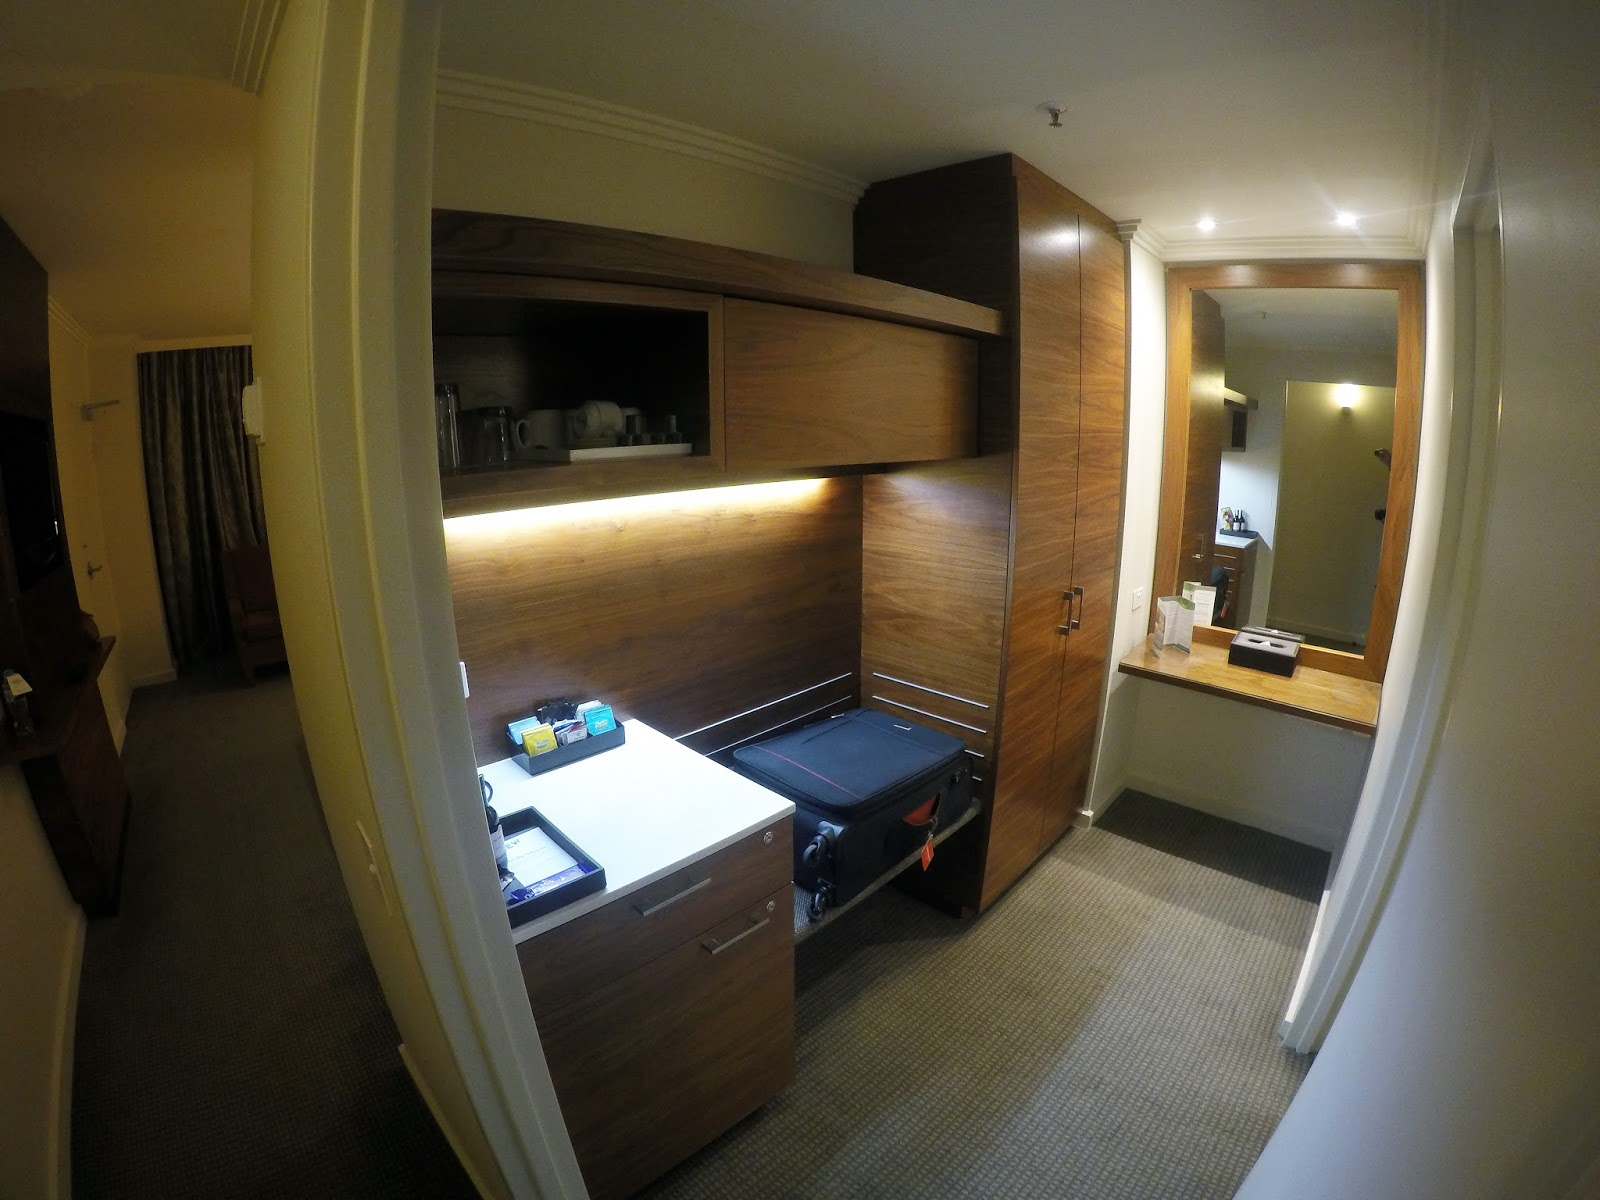 Melbourne Parkview Hotel Wardrobe and Dressing Room